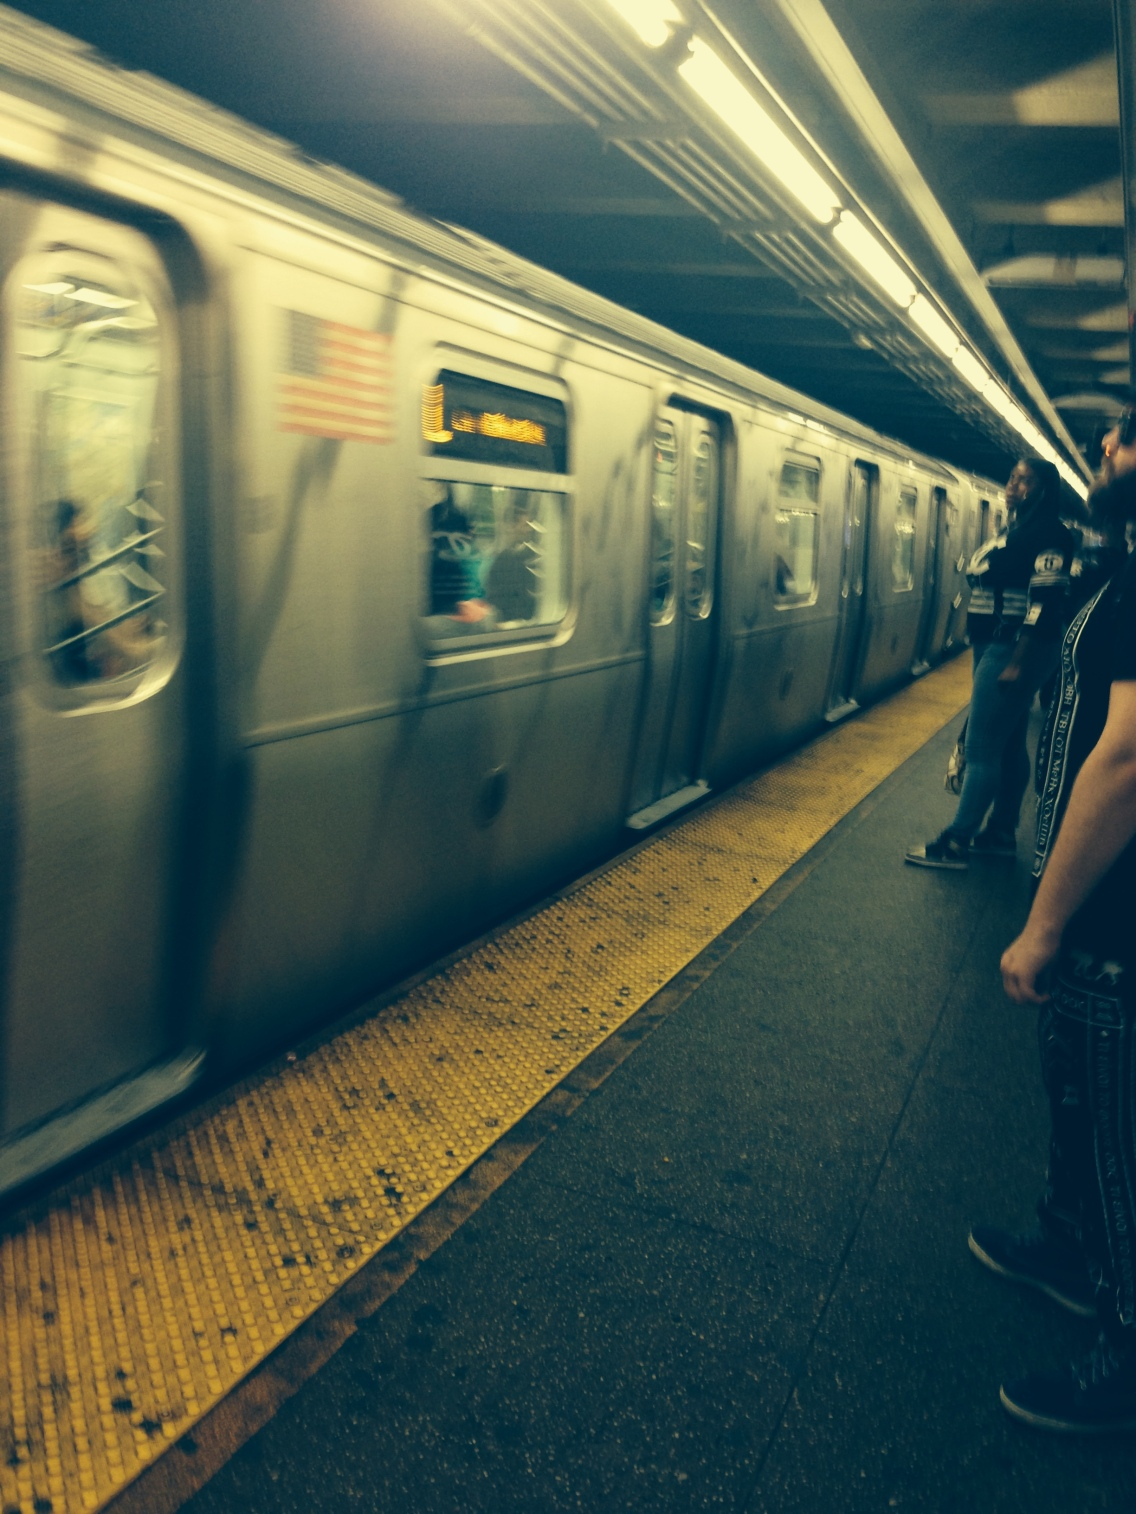 Trying out the Subway. Not bad!